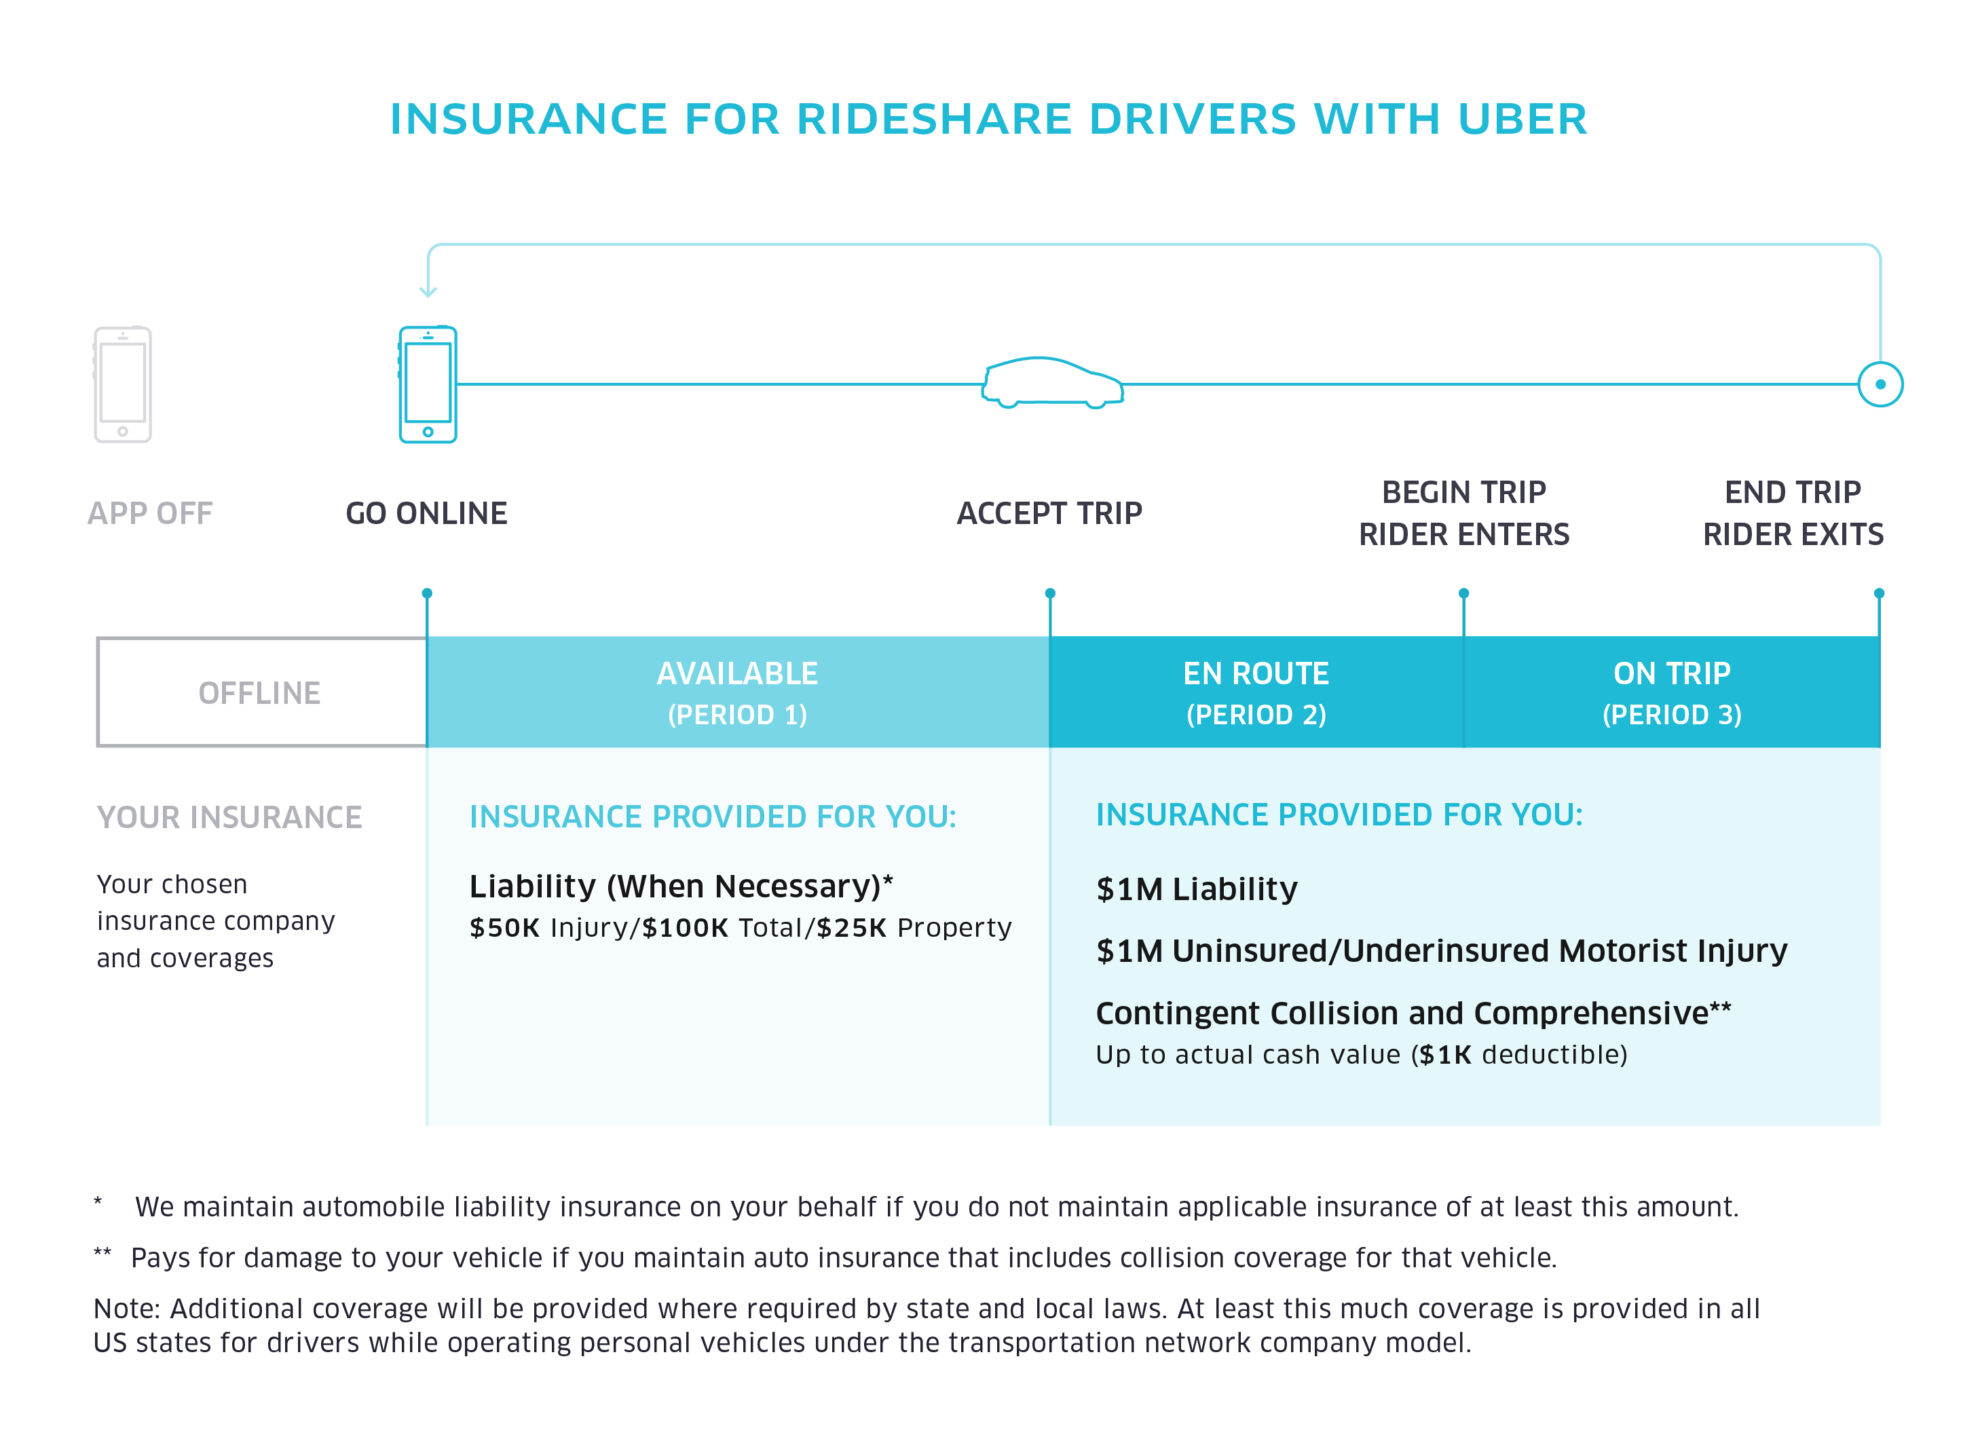 Uber's insurance policy